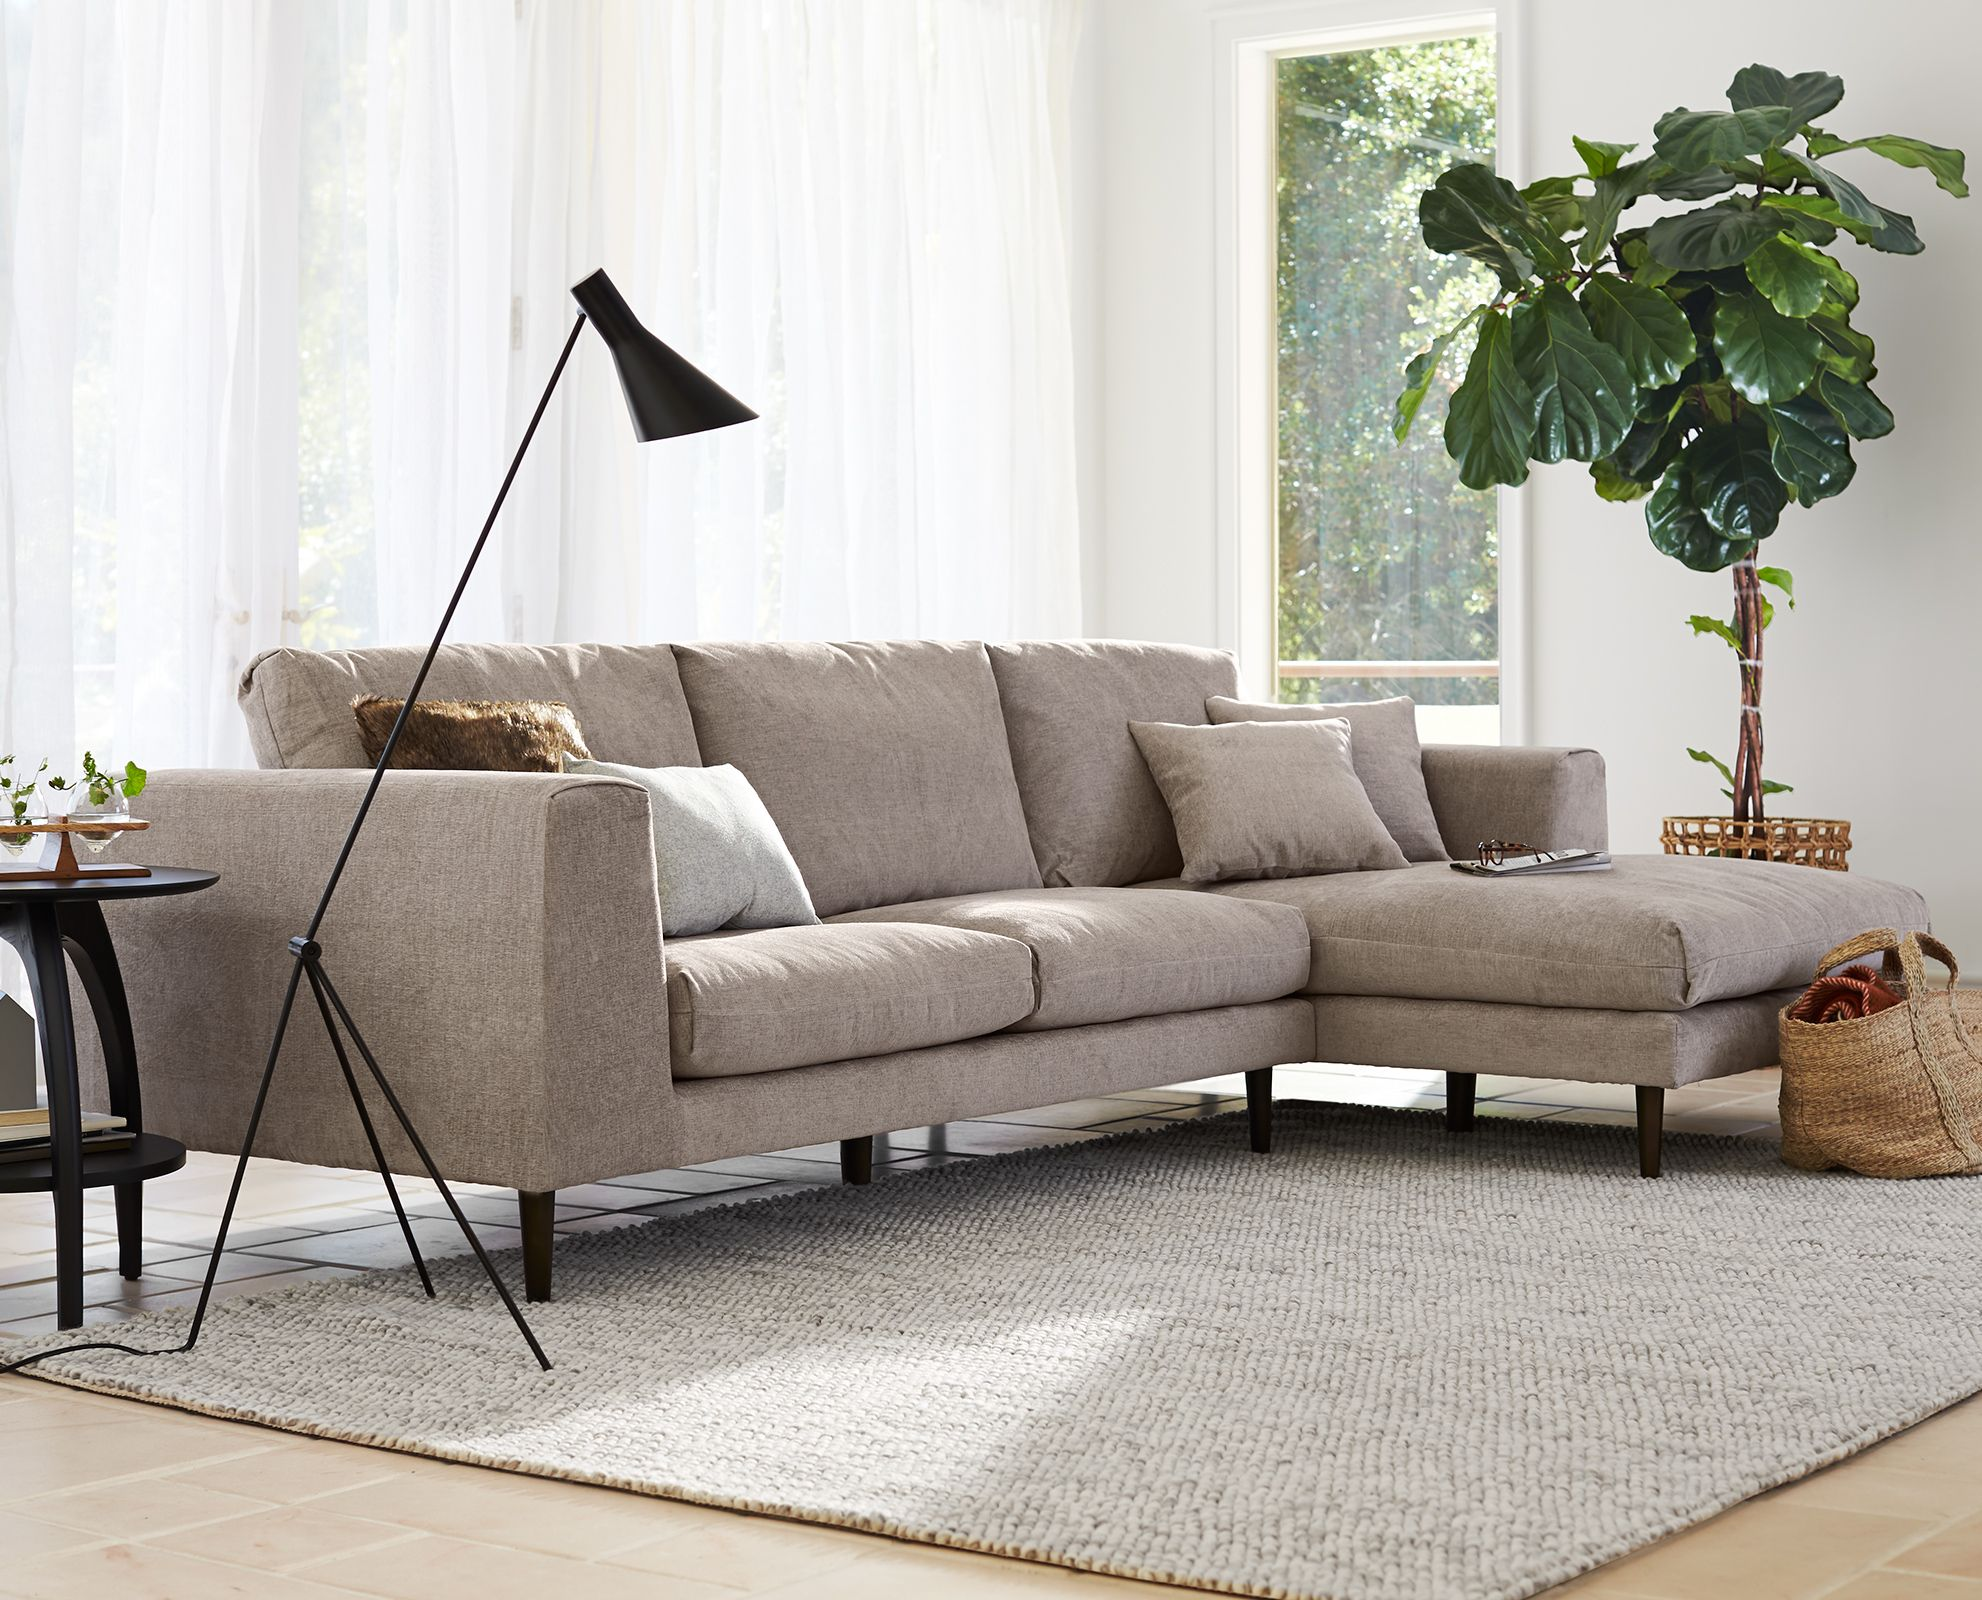 Jorgen Chaise Sectional from Scandinavian Designs sectional sofa